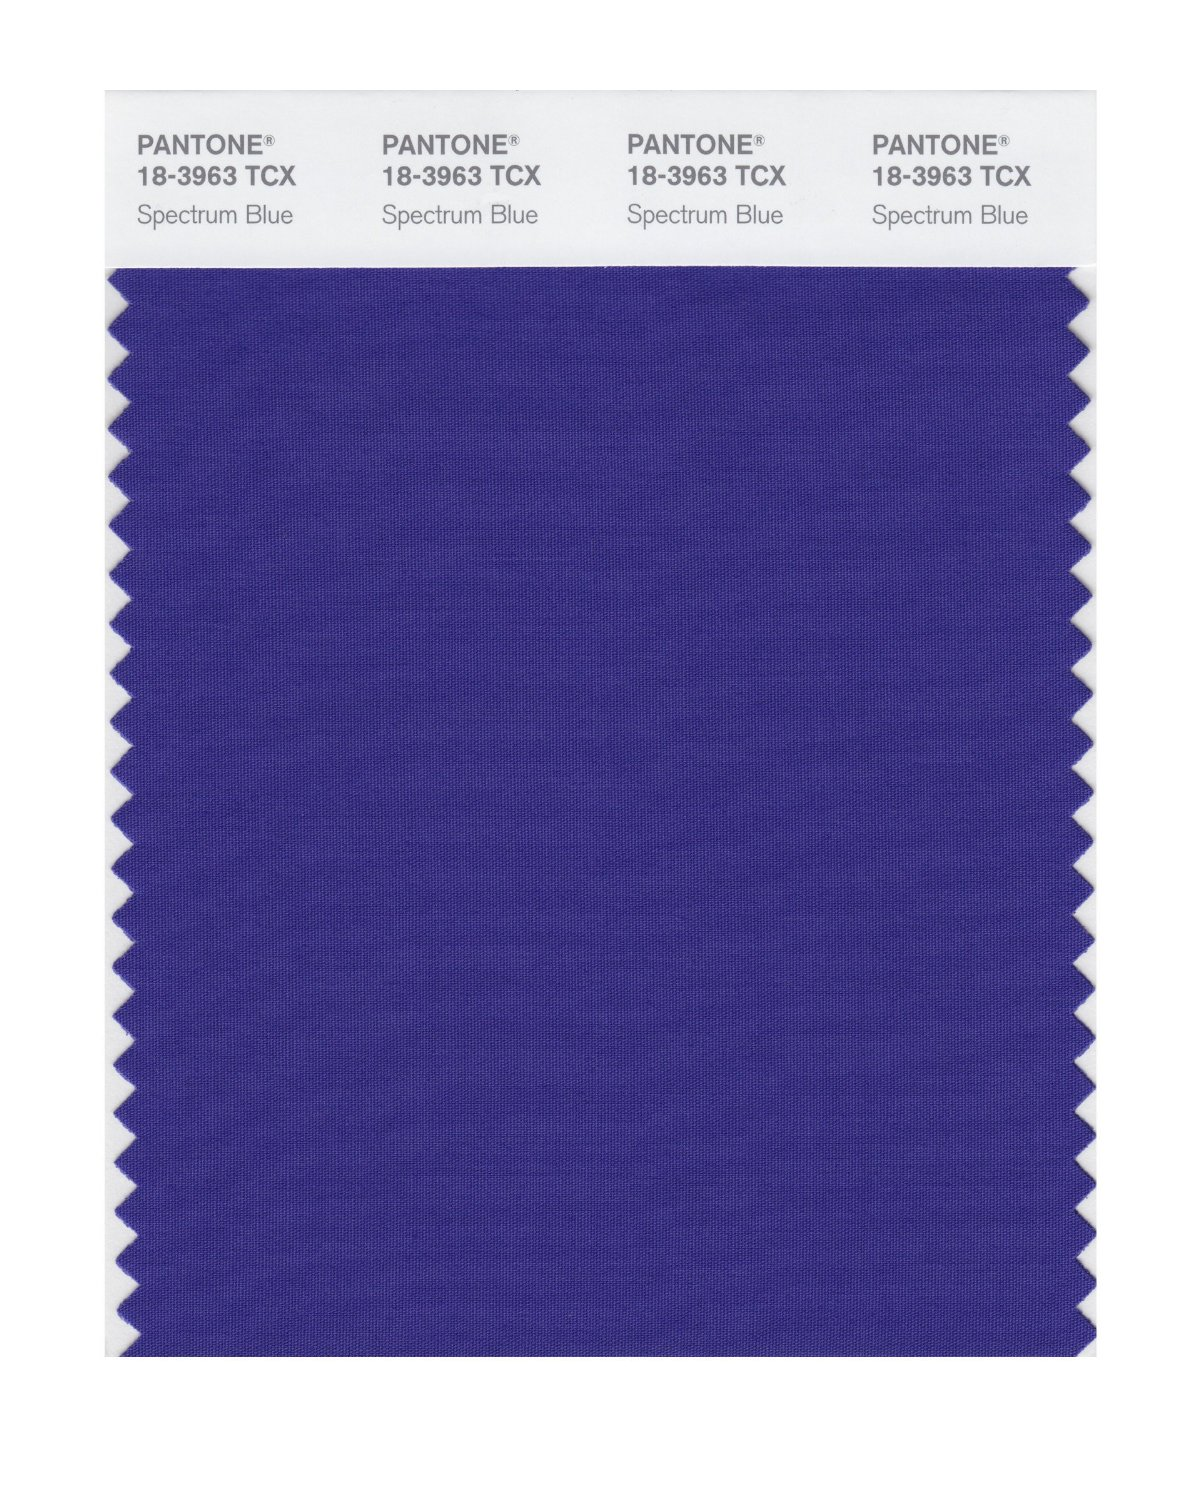 Pantone Smart Swatch 18-3963 Spectrum Blue